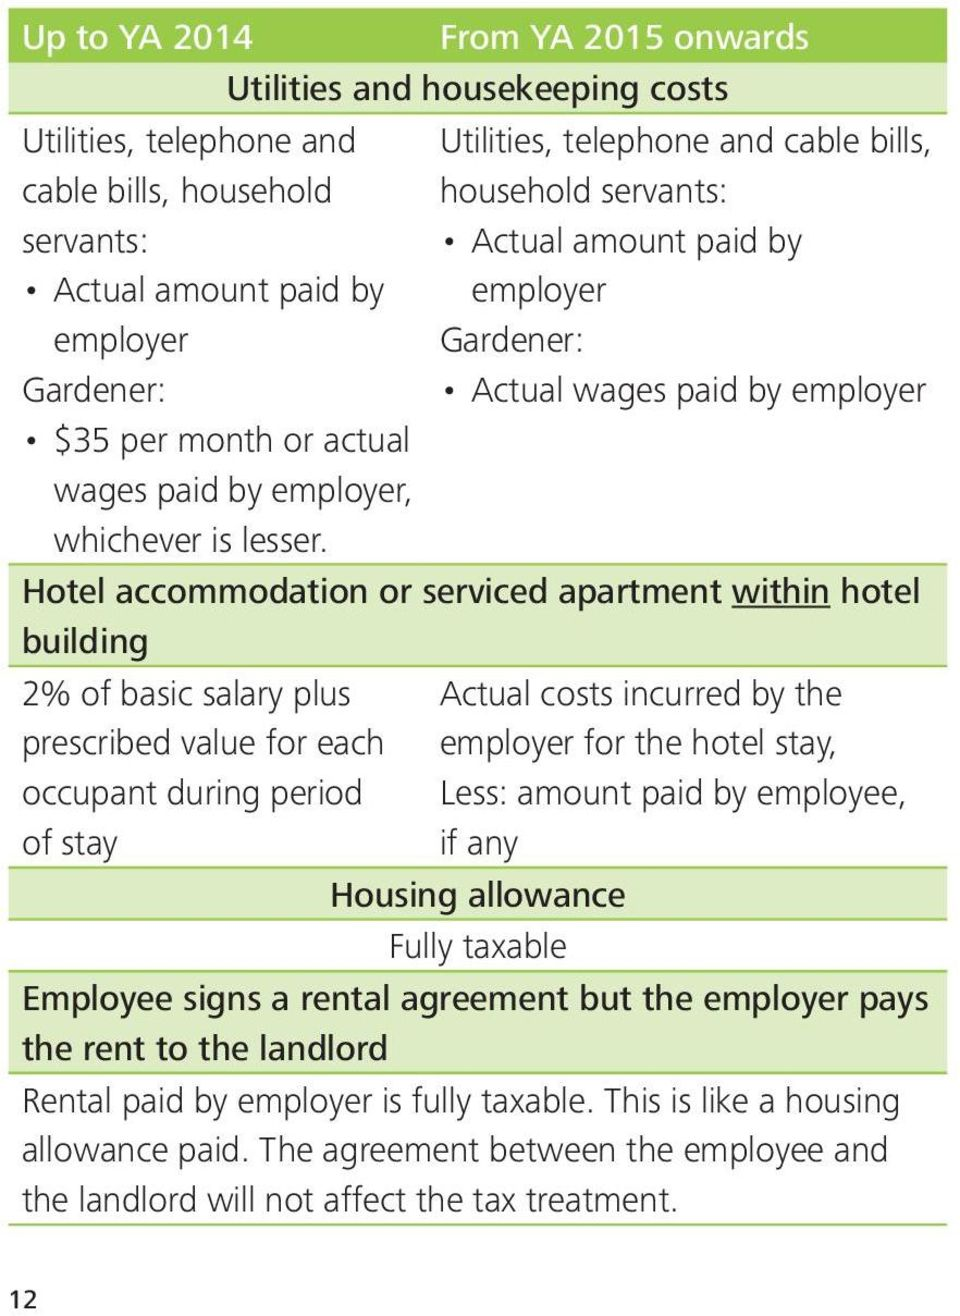 Utilities, telephone and cable bills, household servants: Actual amount paid by employer Gardener: Actual wages paid by employer Hotel accommodation or serviced apartment within hotel building 2% of